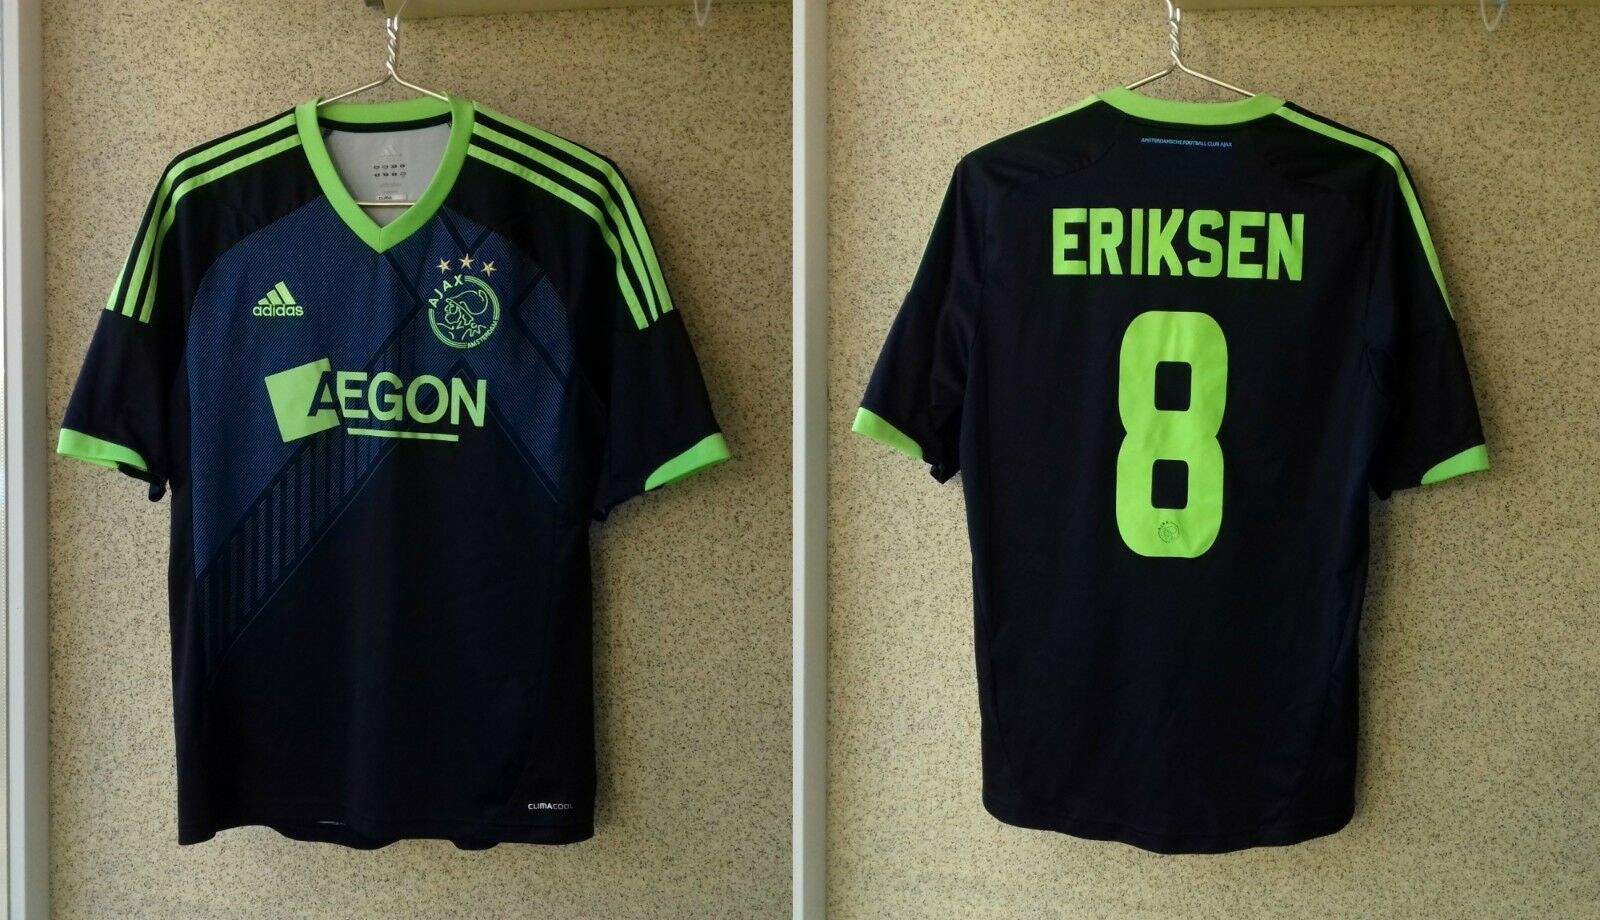 Ajax Away football shirt 20122013 Jersey M Adidas Soccer   8 Christian Eriksen